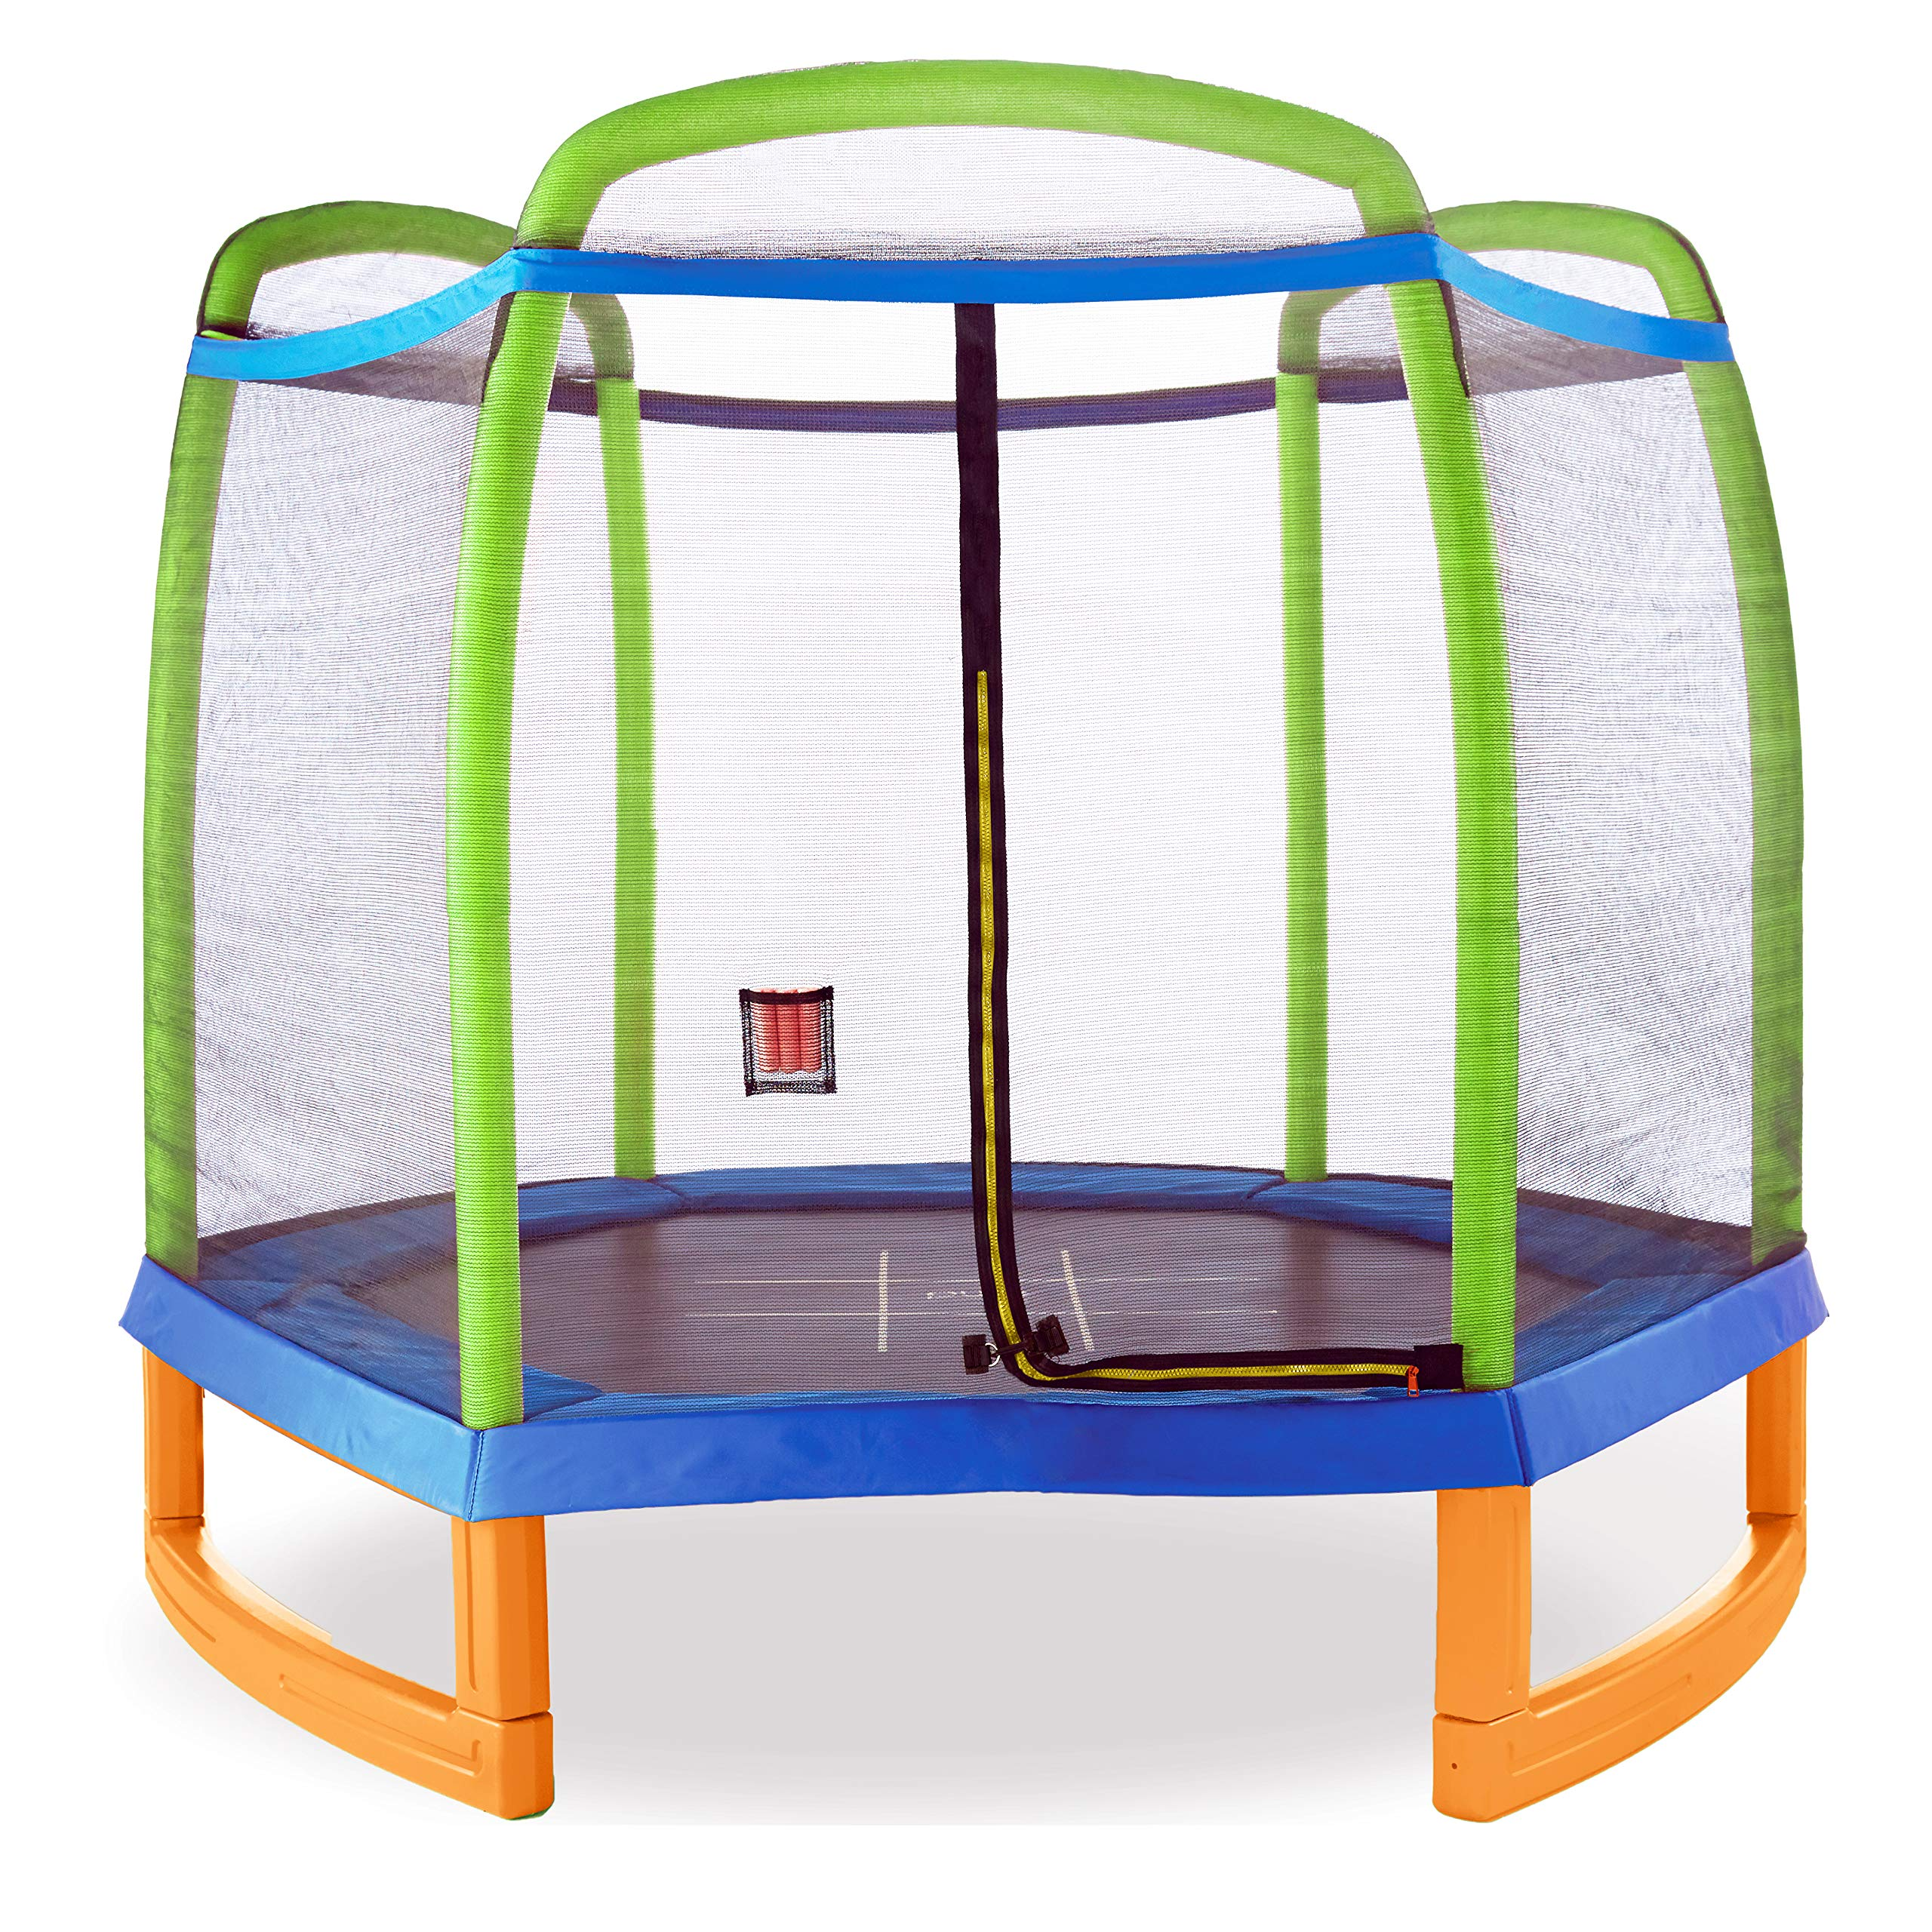 Pure Fun 7ft Kids Trampoline with Safety Enclosure and Tic Tac Toe, Indoor or Outdoor, Ages 3 t o9